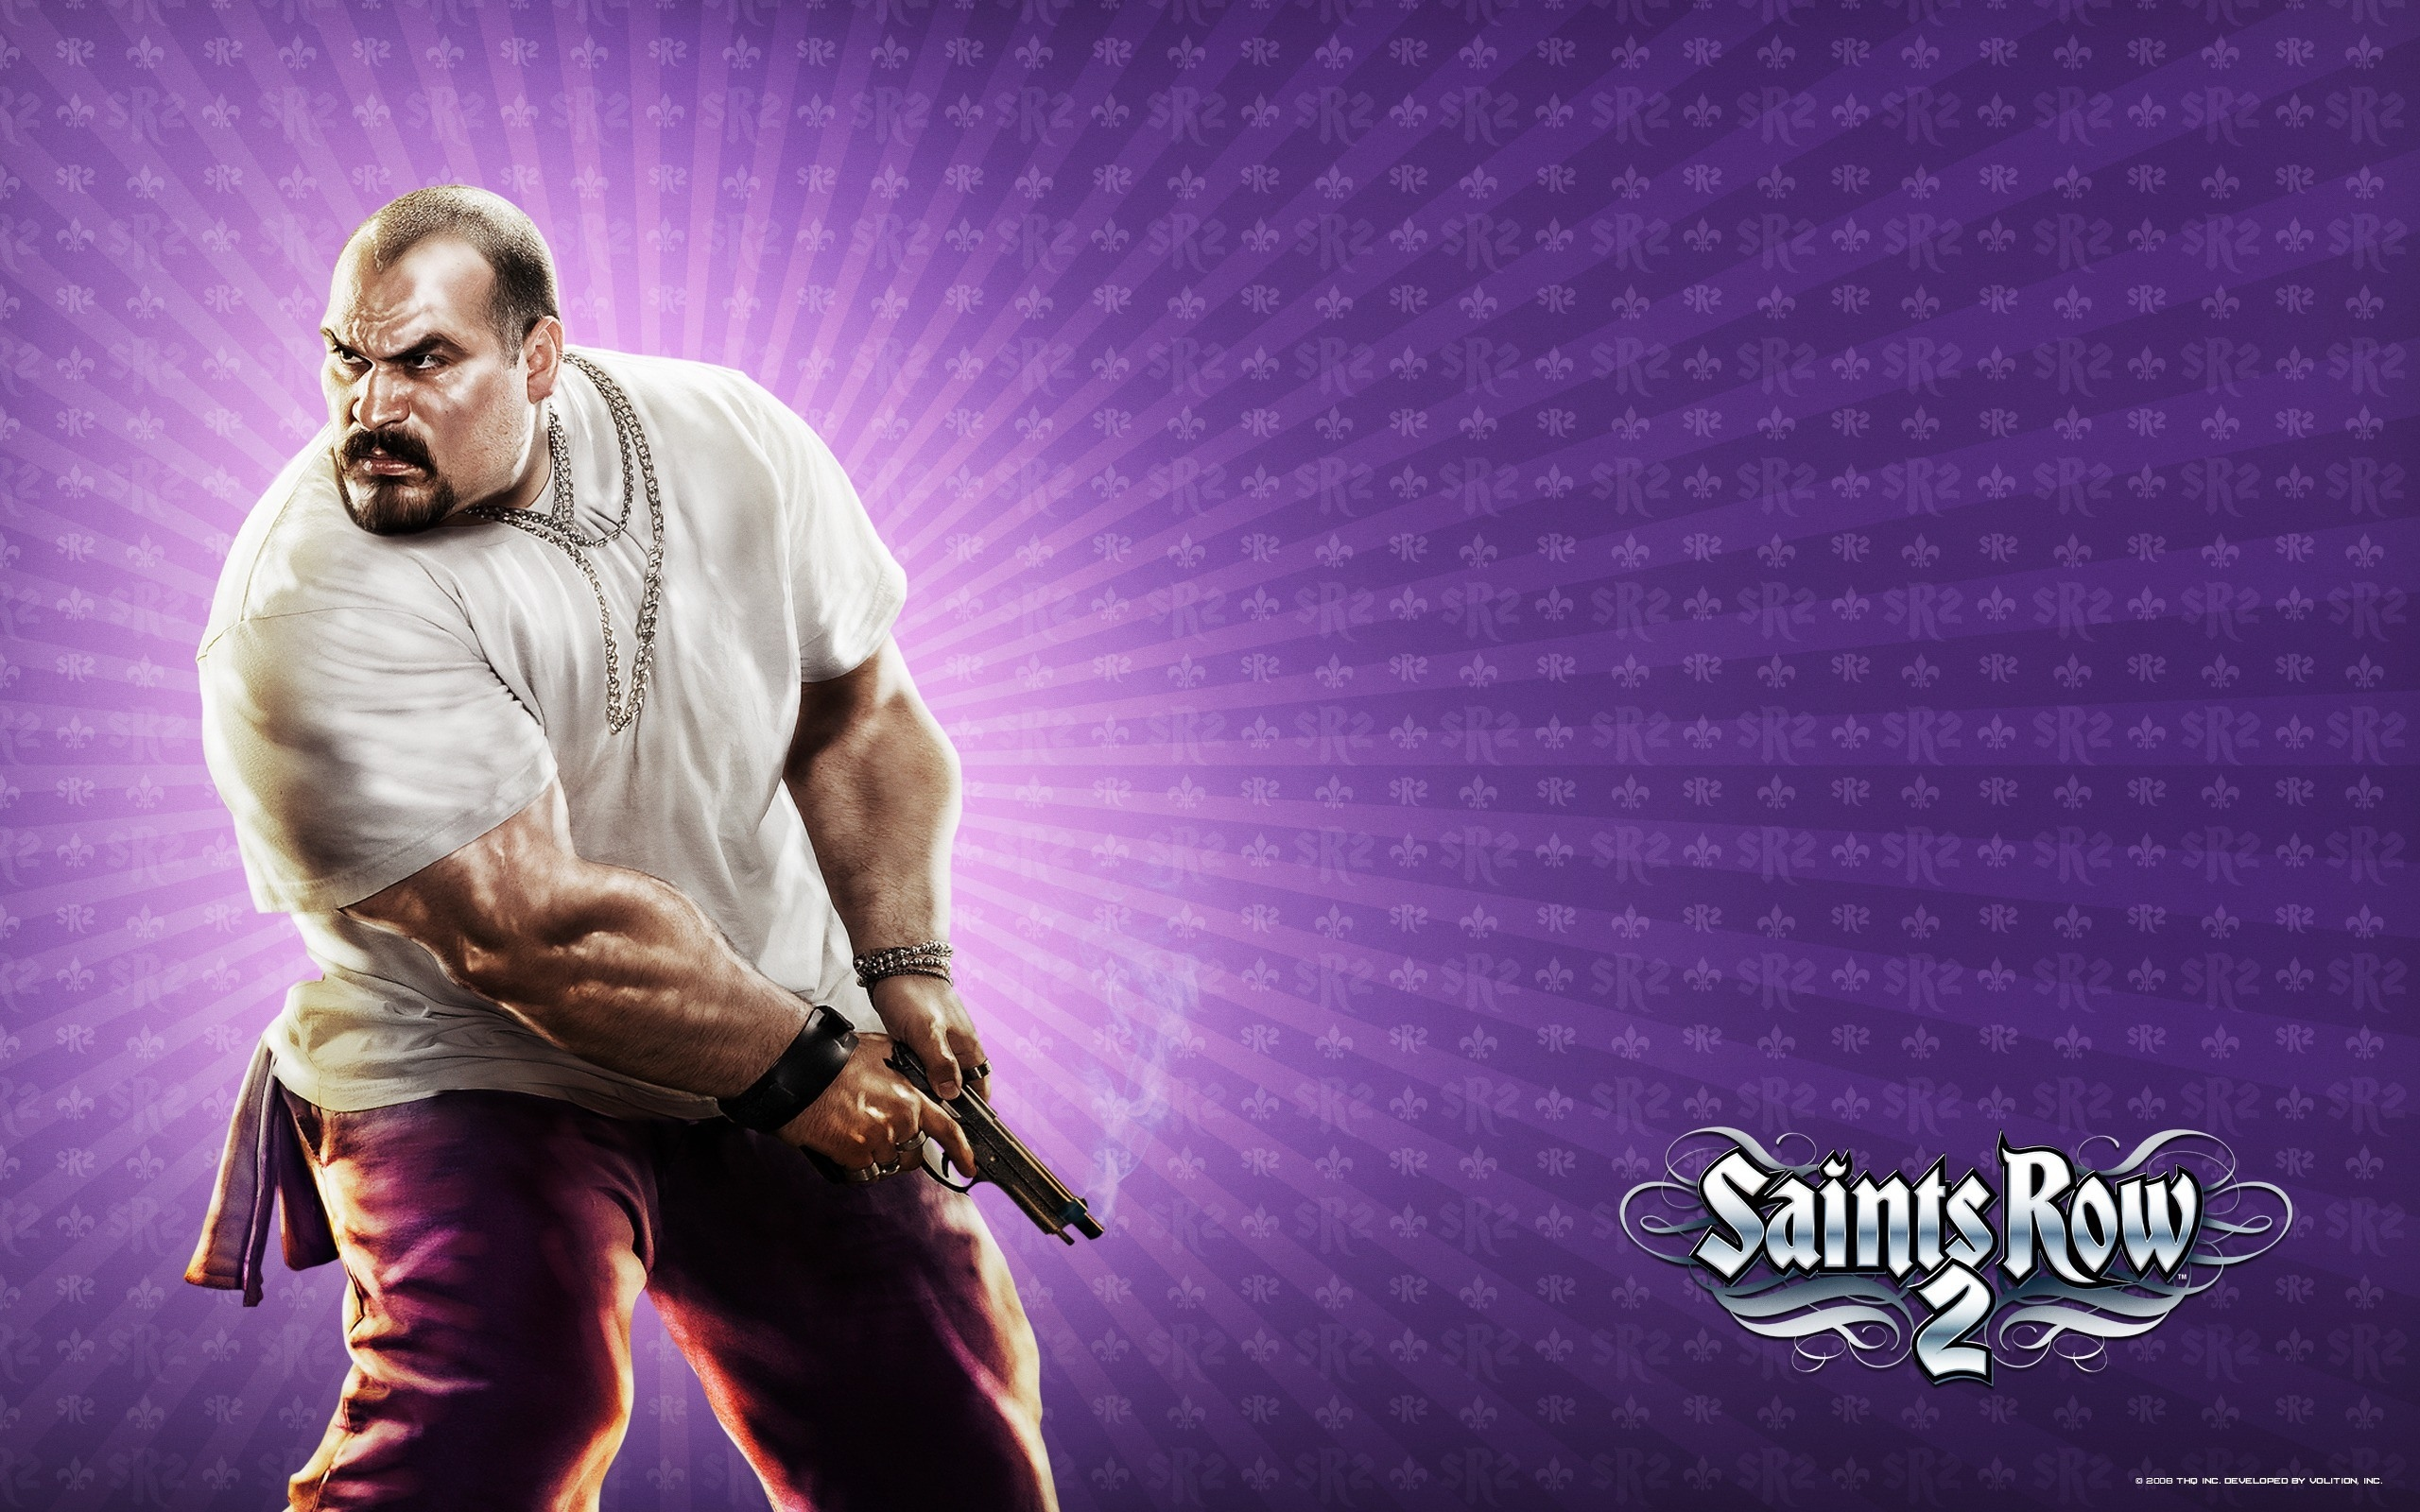 3d Wallpaper Sword Art Online Interactive Hd Saints Row 2 Wallpapers Saints Row 2 Stock Photos